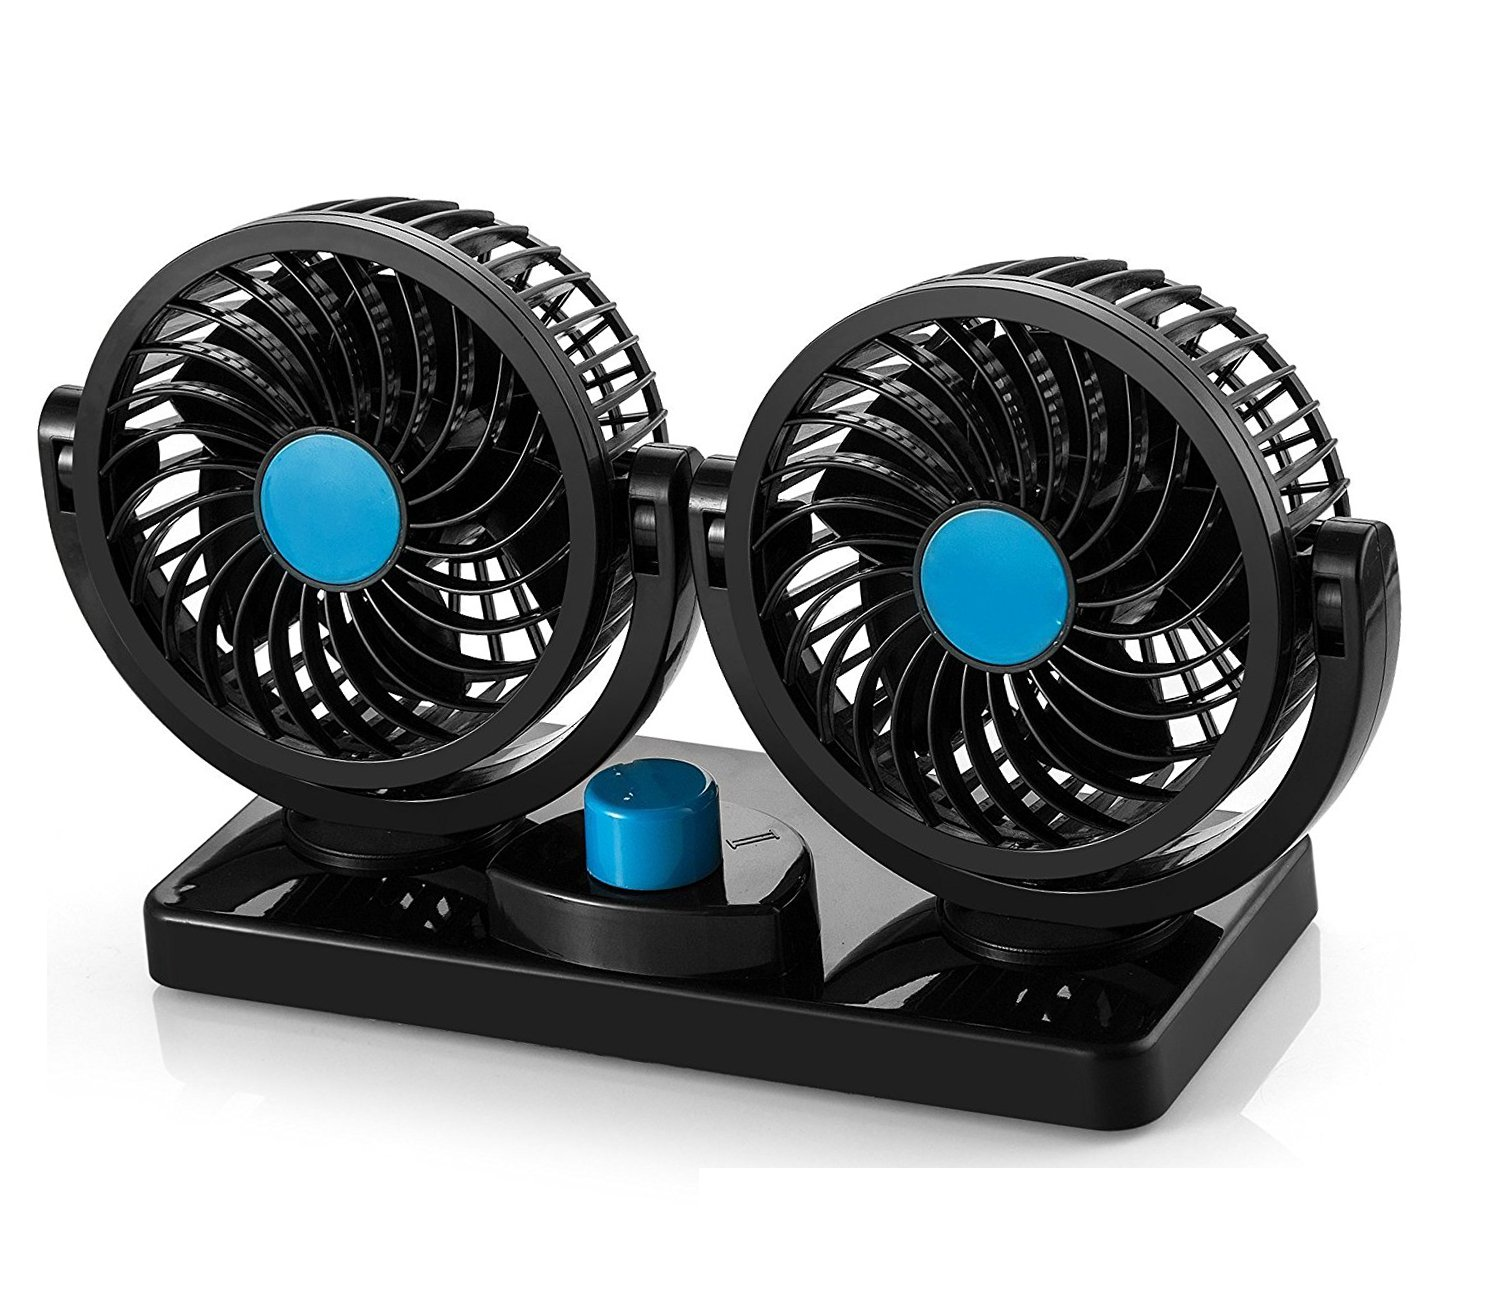 KanCai 12V Car Fan 360 Degree Rotation Adjustable Dual Head Car Auto Cooling Air Fan- Powerful Quiet 2 Speed Rotatable Dashboard Auto Fan with Summer Cooling Air Circulator